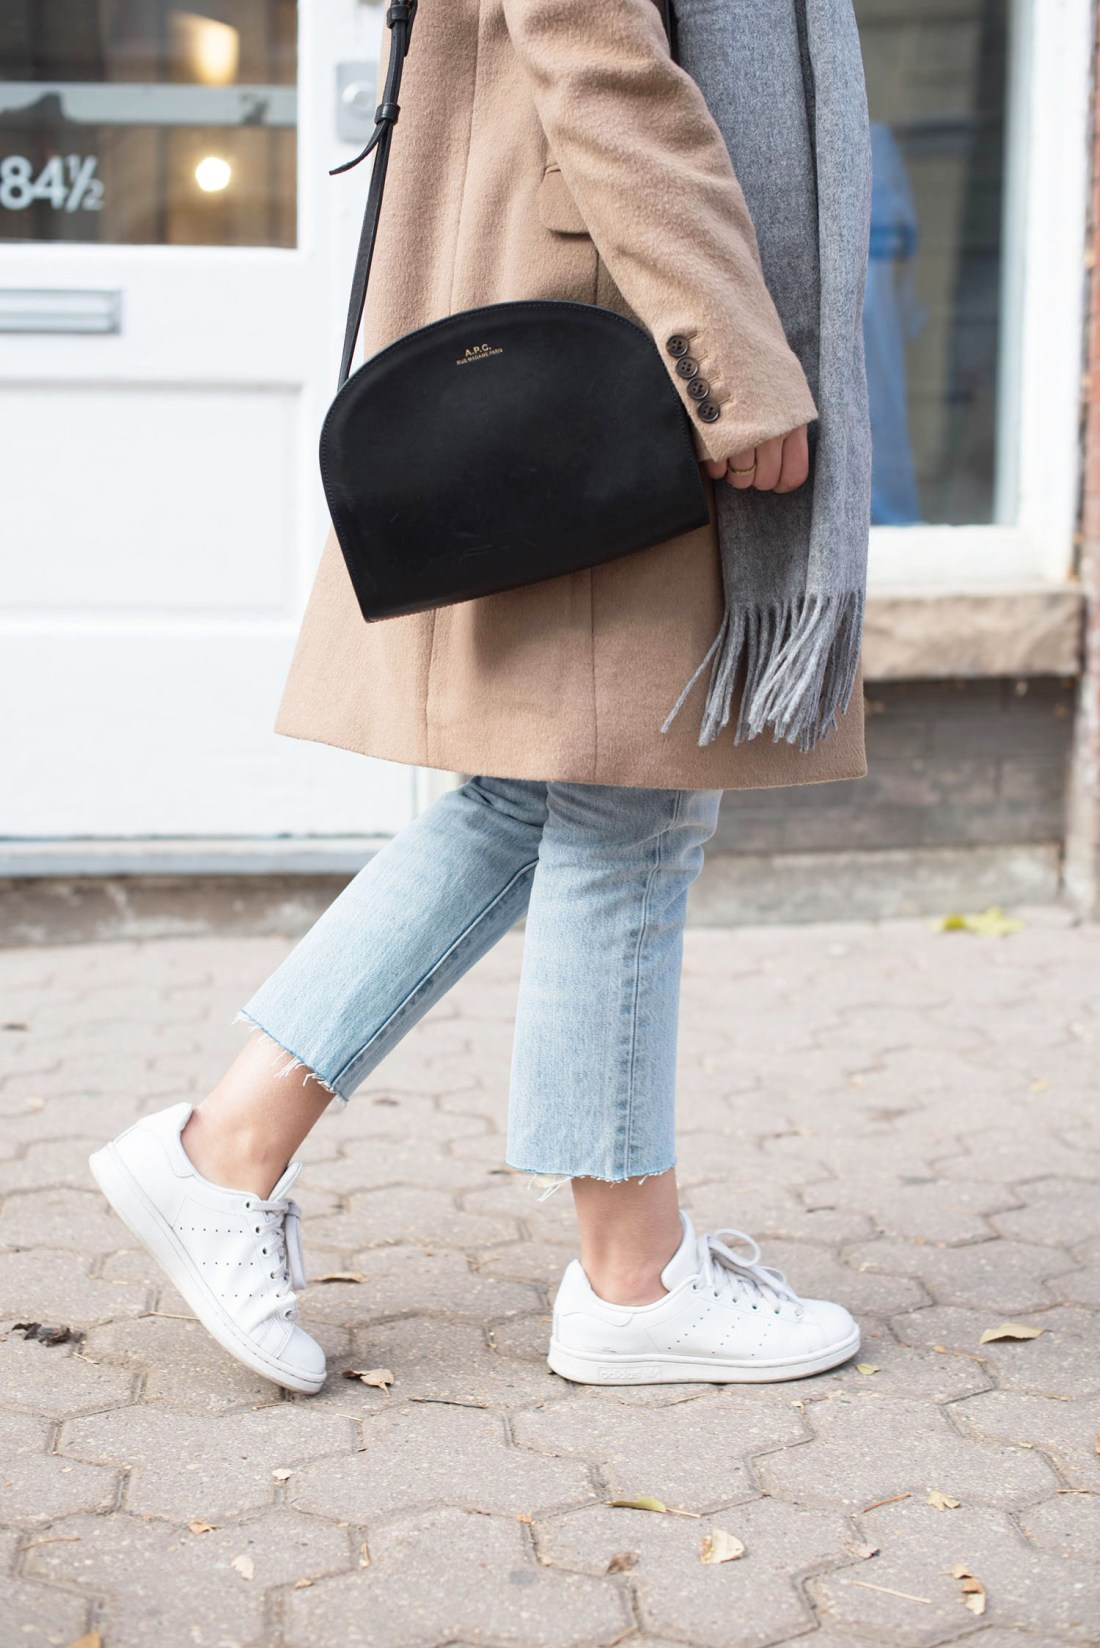 Outfit details on fashion blogger Cee Fardoe of Coco & Vera, including an APC halfmoon bag and Adidas Stan Smith sneakers